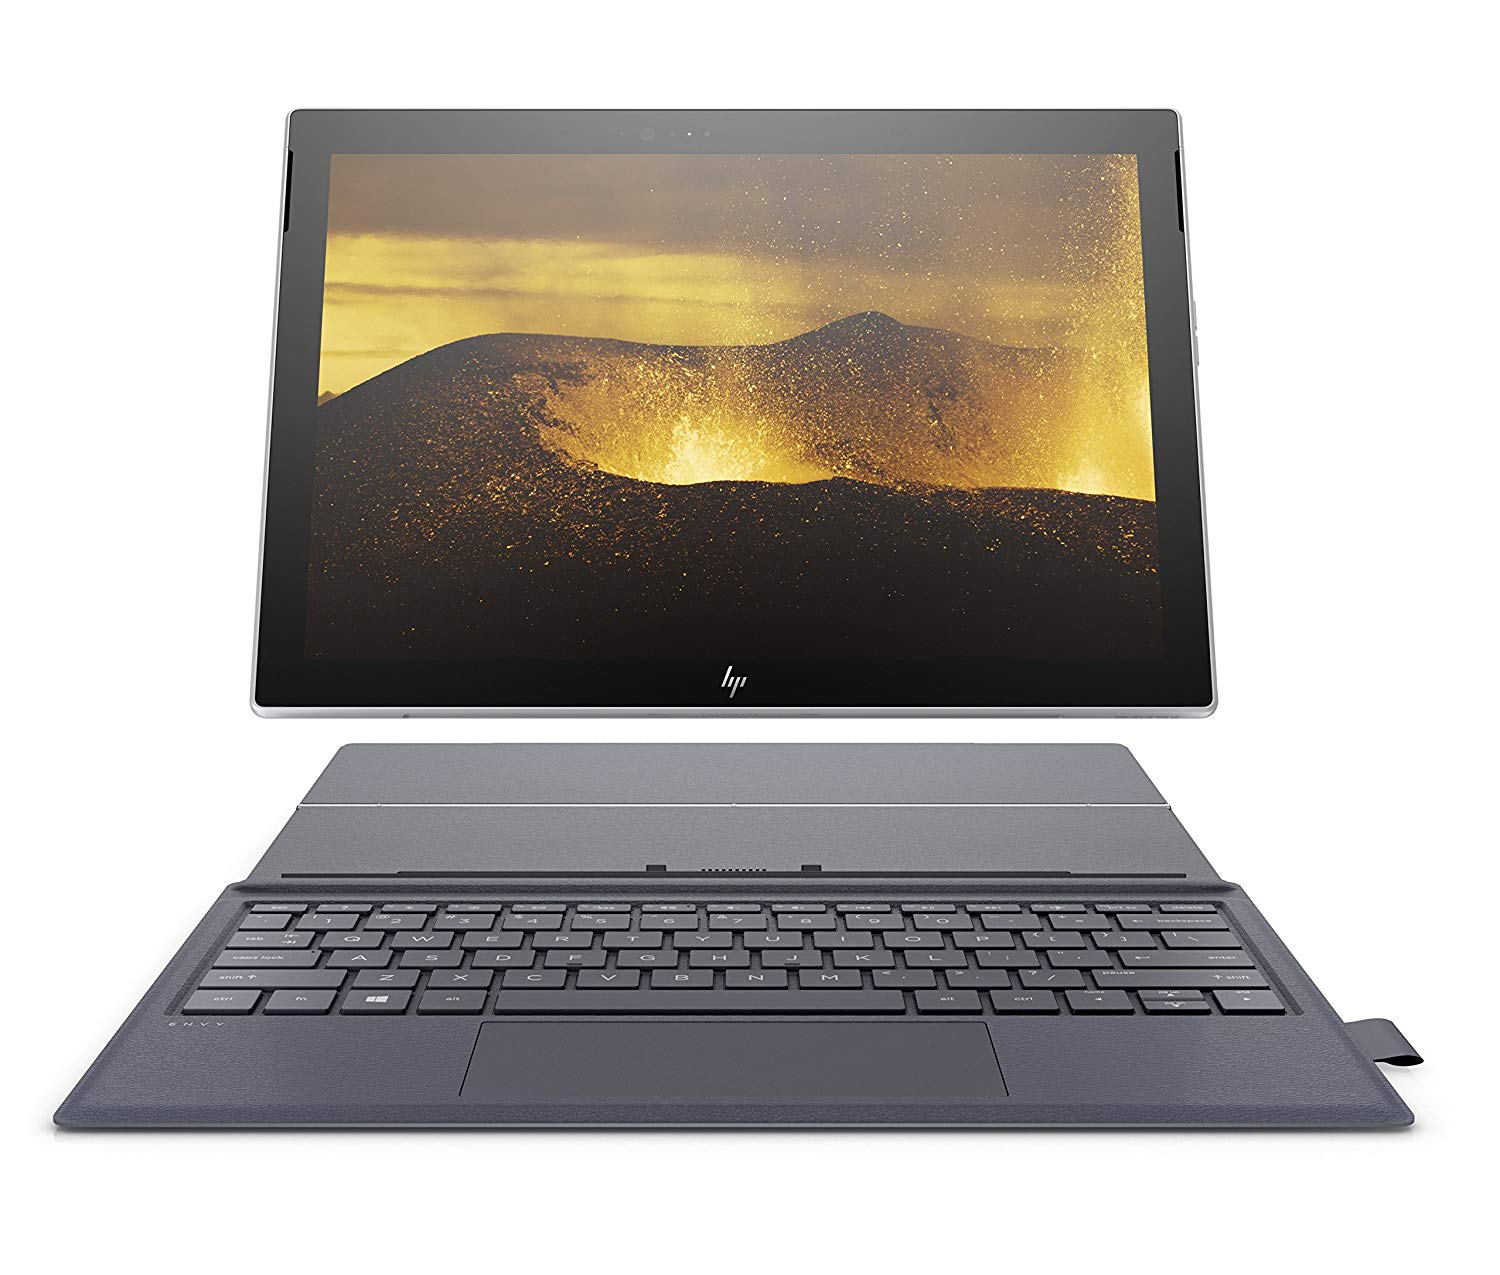 HP Envy x2 12-inch Detachable Laptop with Stylus Pen and 4G LTE, Qualcomm Snapdragon 835 Processor, 4 GB RAM, 128 GB Flash Storage, Windows 10 (12-e091ms, Silver/Blue)